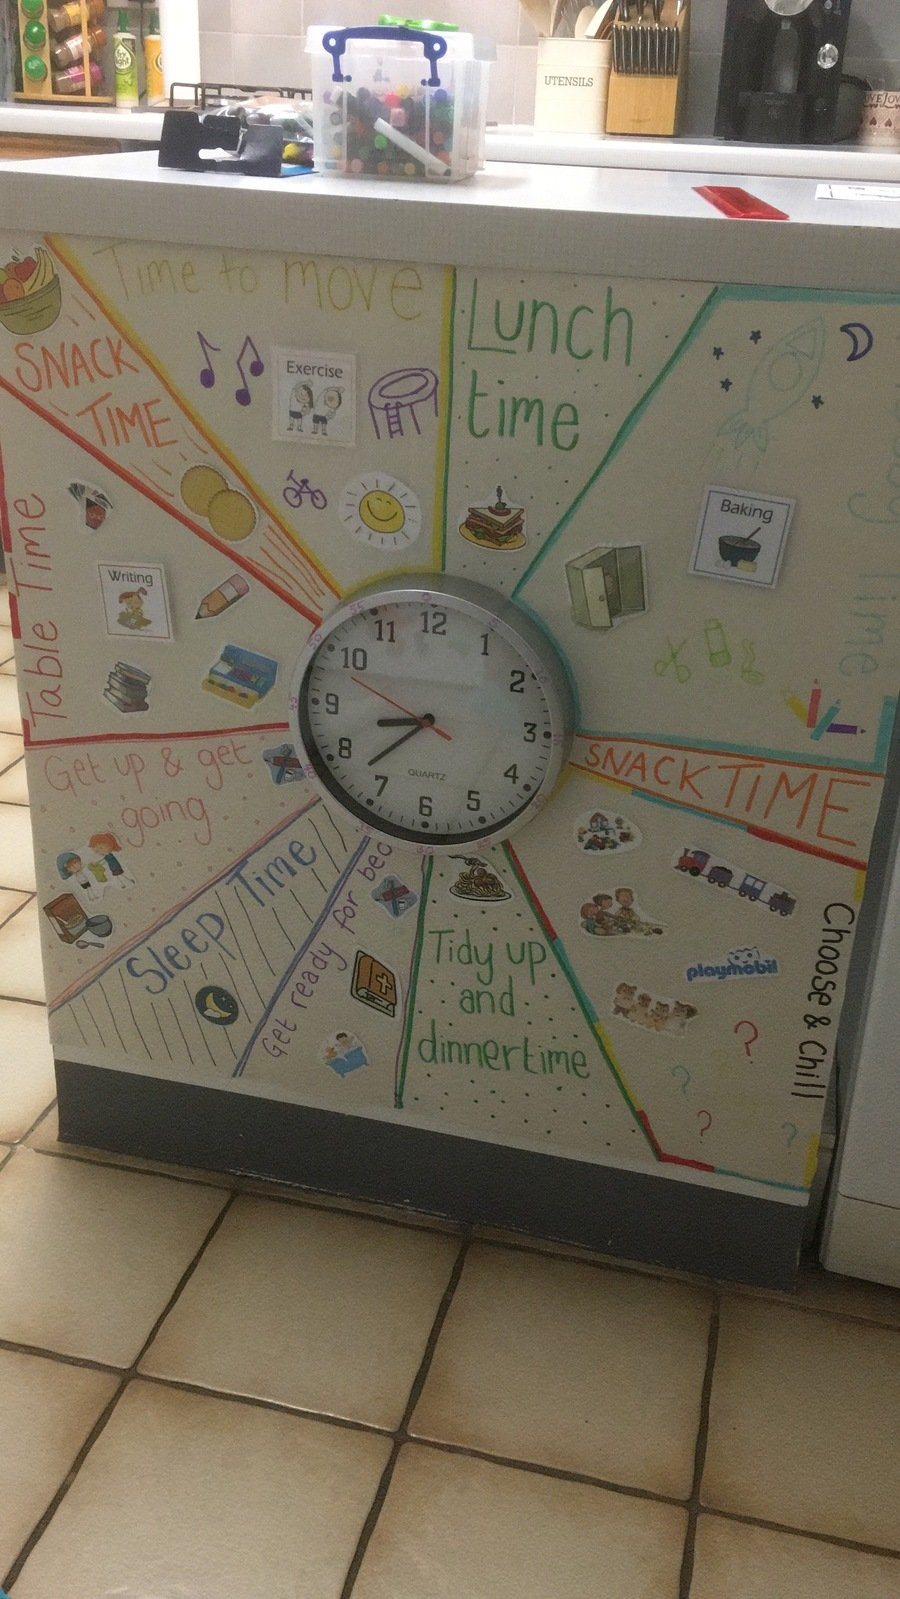 We love seeing your timetables, here is a great example that you may take inspiration from!